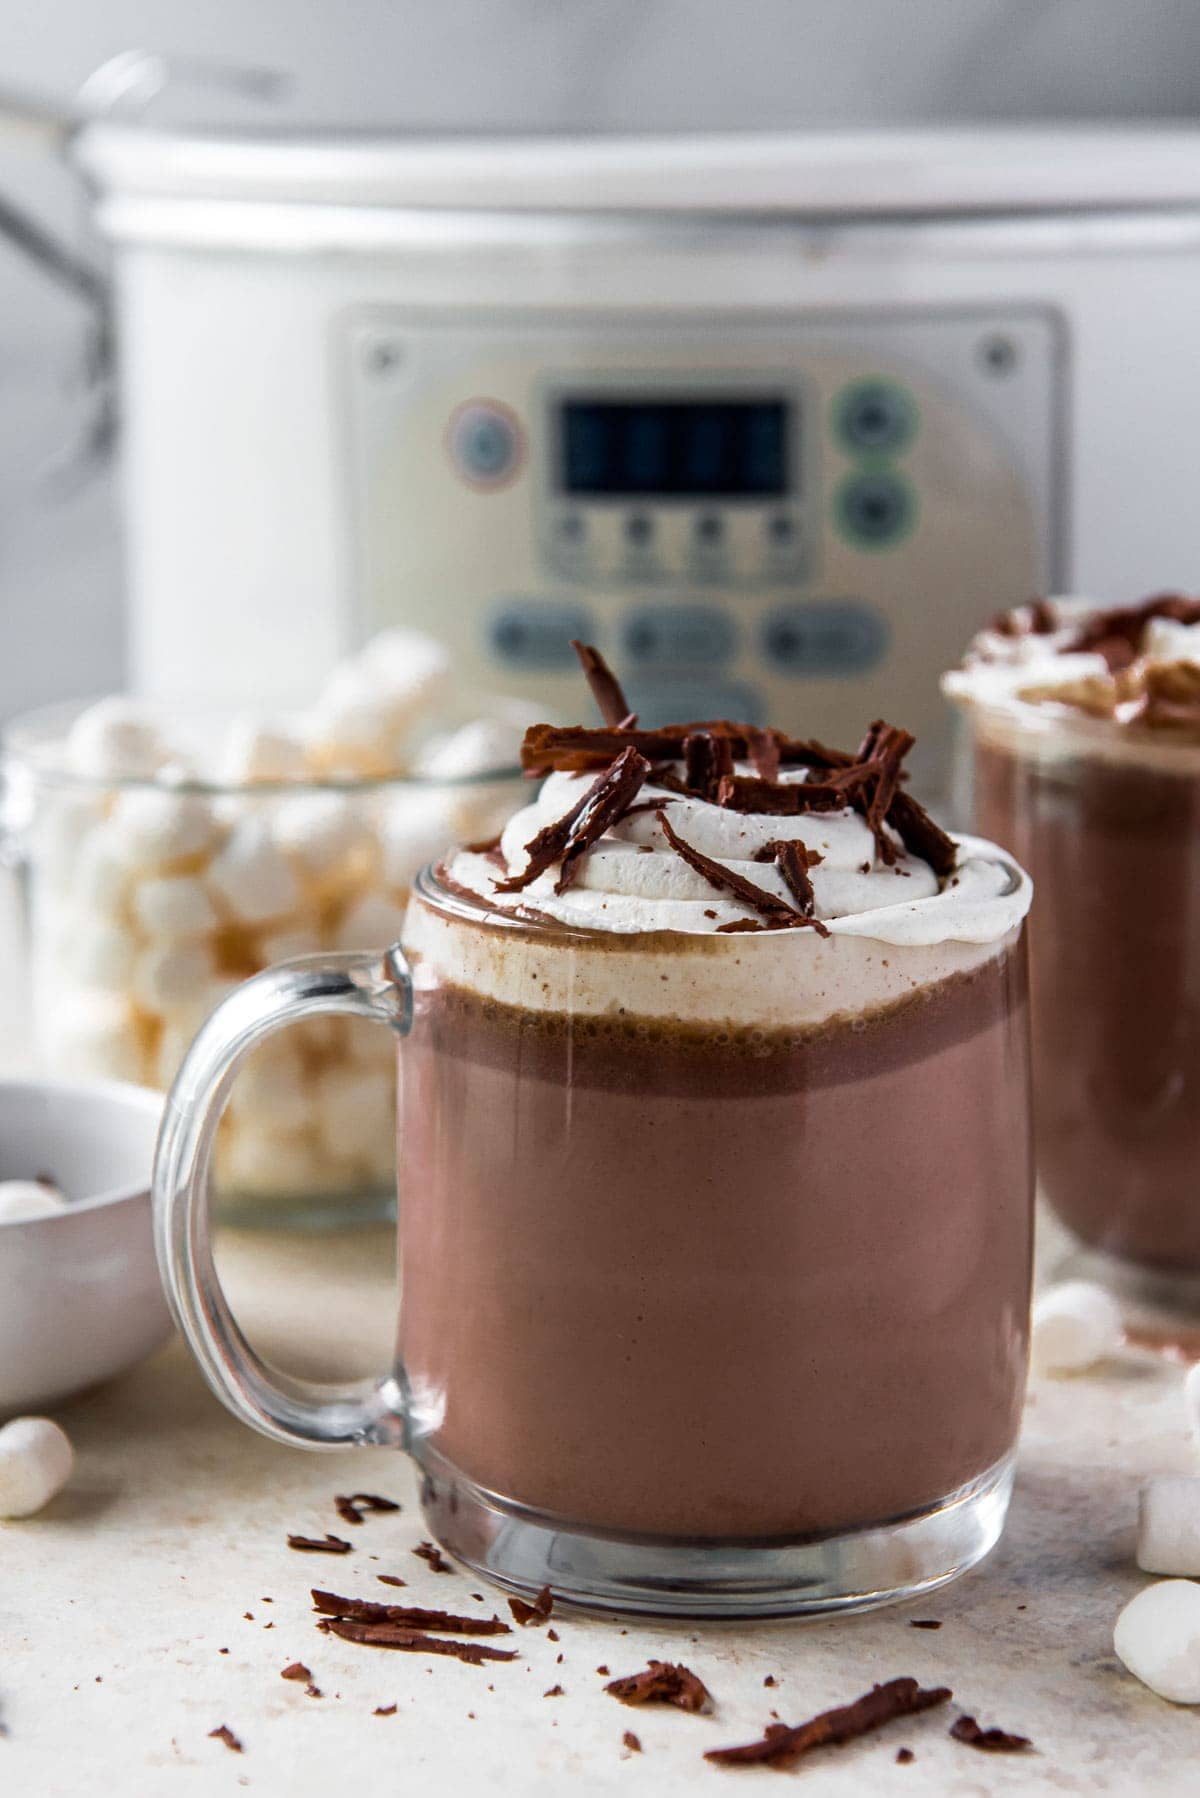 white slow cooker, hot chocolate in a clear glass, whipped cream, chocolate shavings, marshmallows